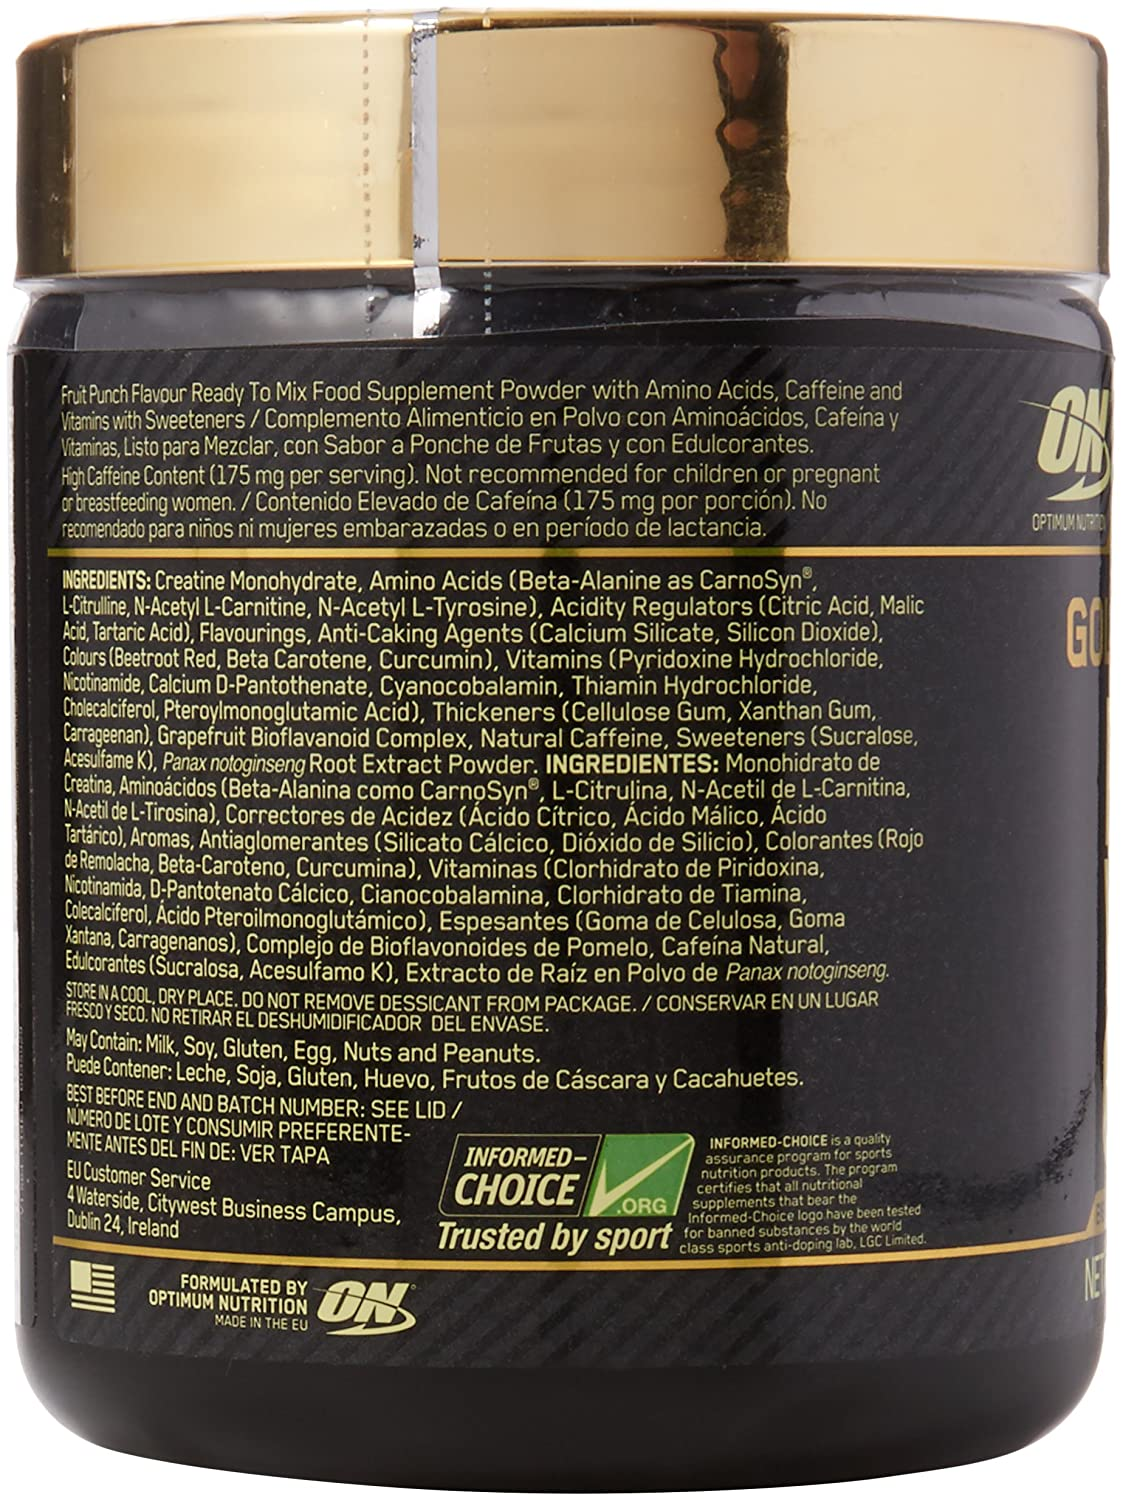 618f1f89f Optimum Nutrition Gold Standard Pre Workout Energy Powder Drink with  Creatine Monohydrate